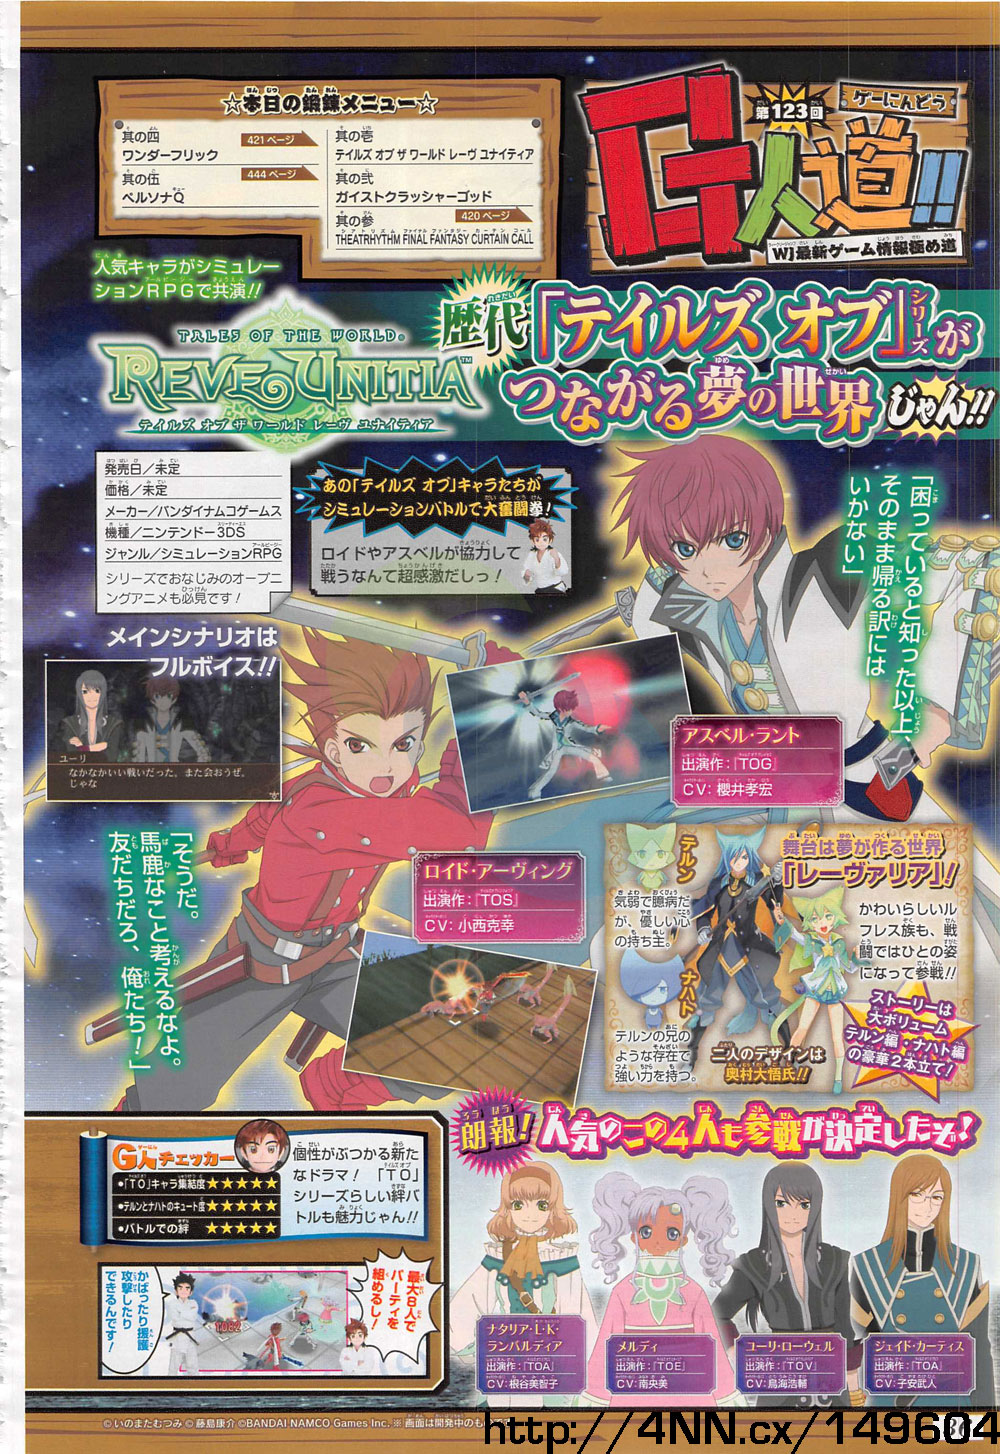 Tales of the World: Reve Unitia is Revealed for 3DS